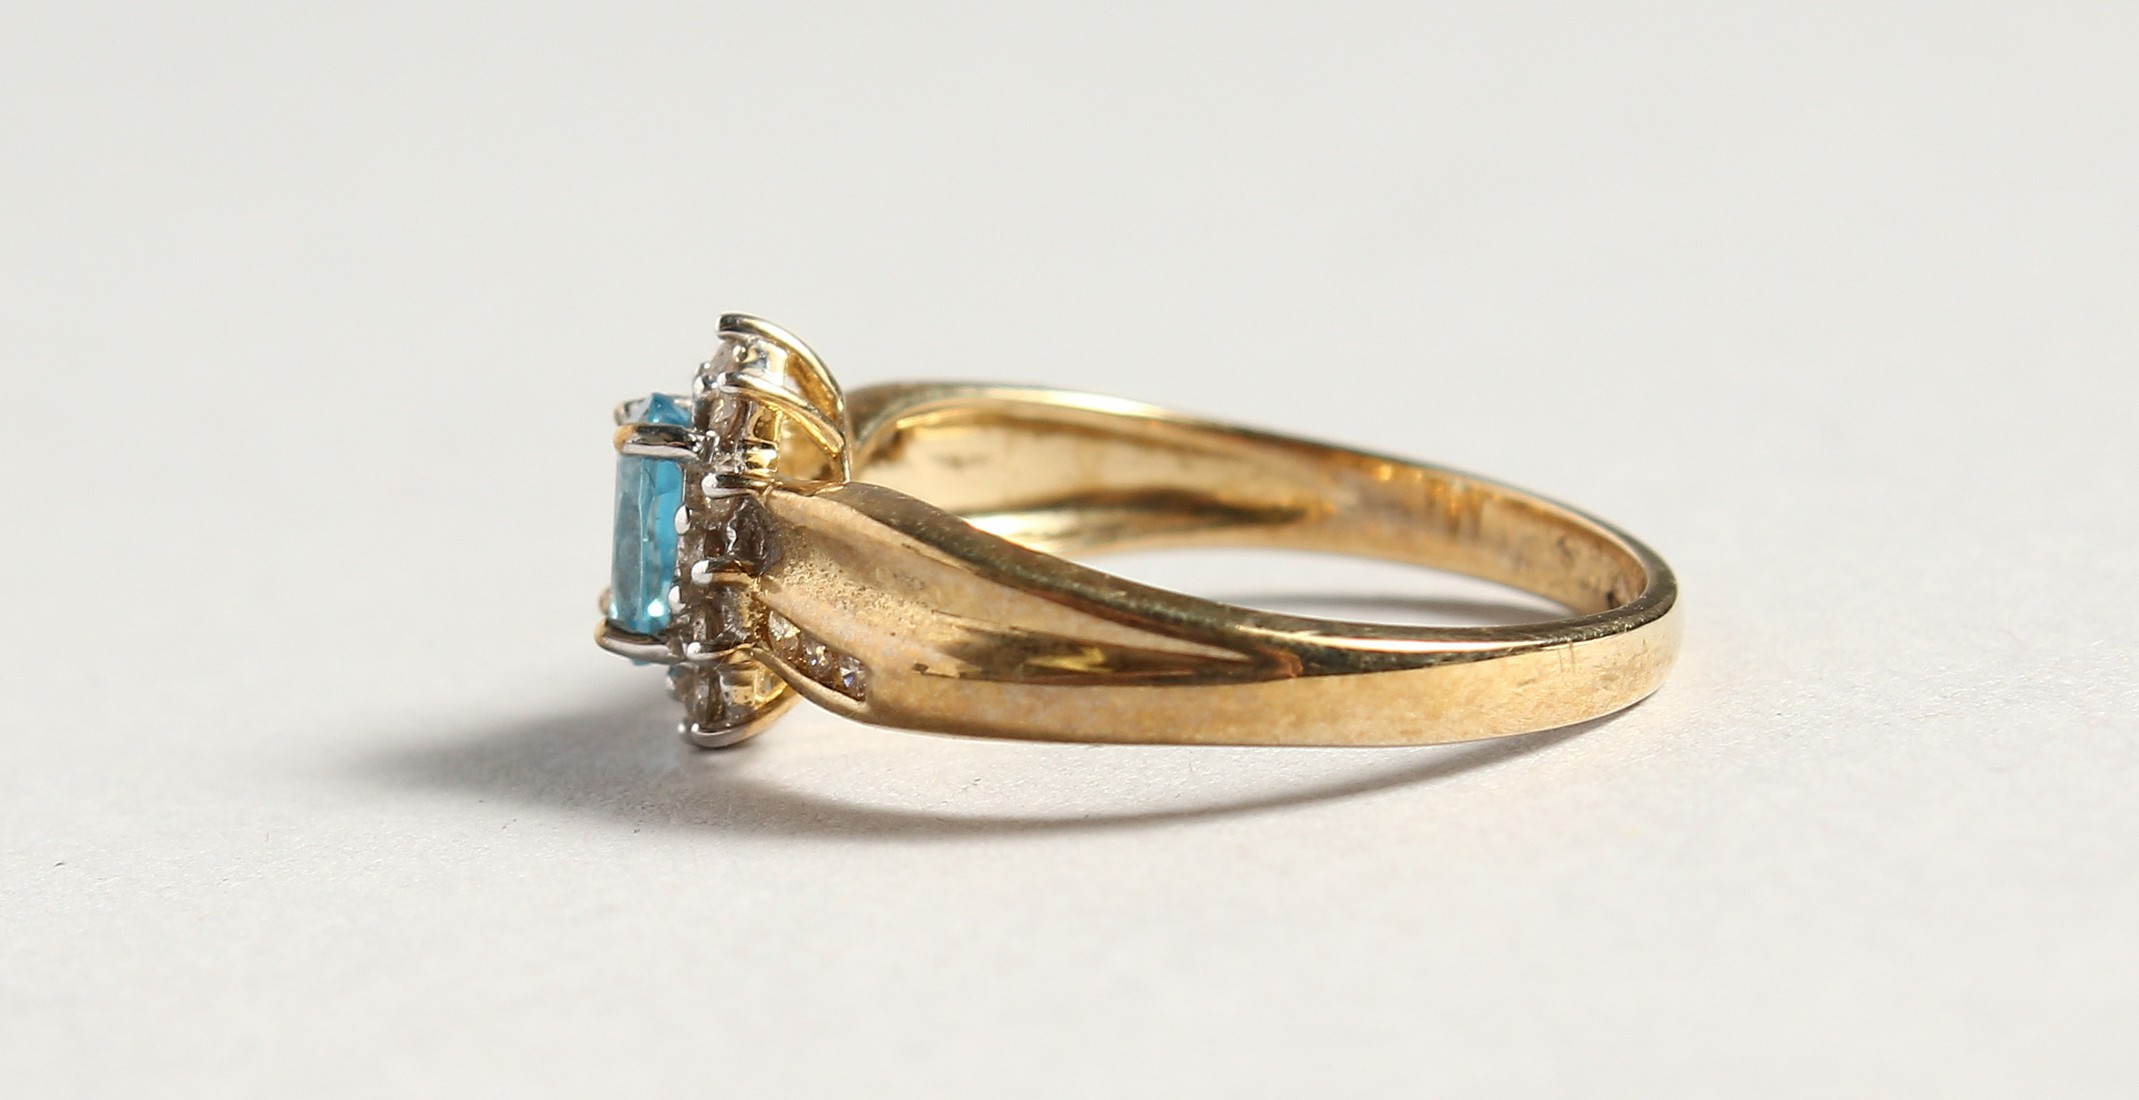 A 9CT GOLD BLUE TOPAZ AND DIAMOND CLUSTER RING - Image 3 of 5